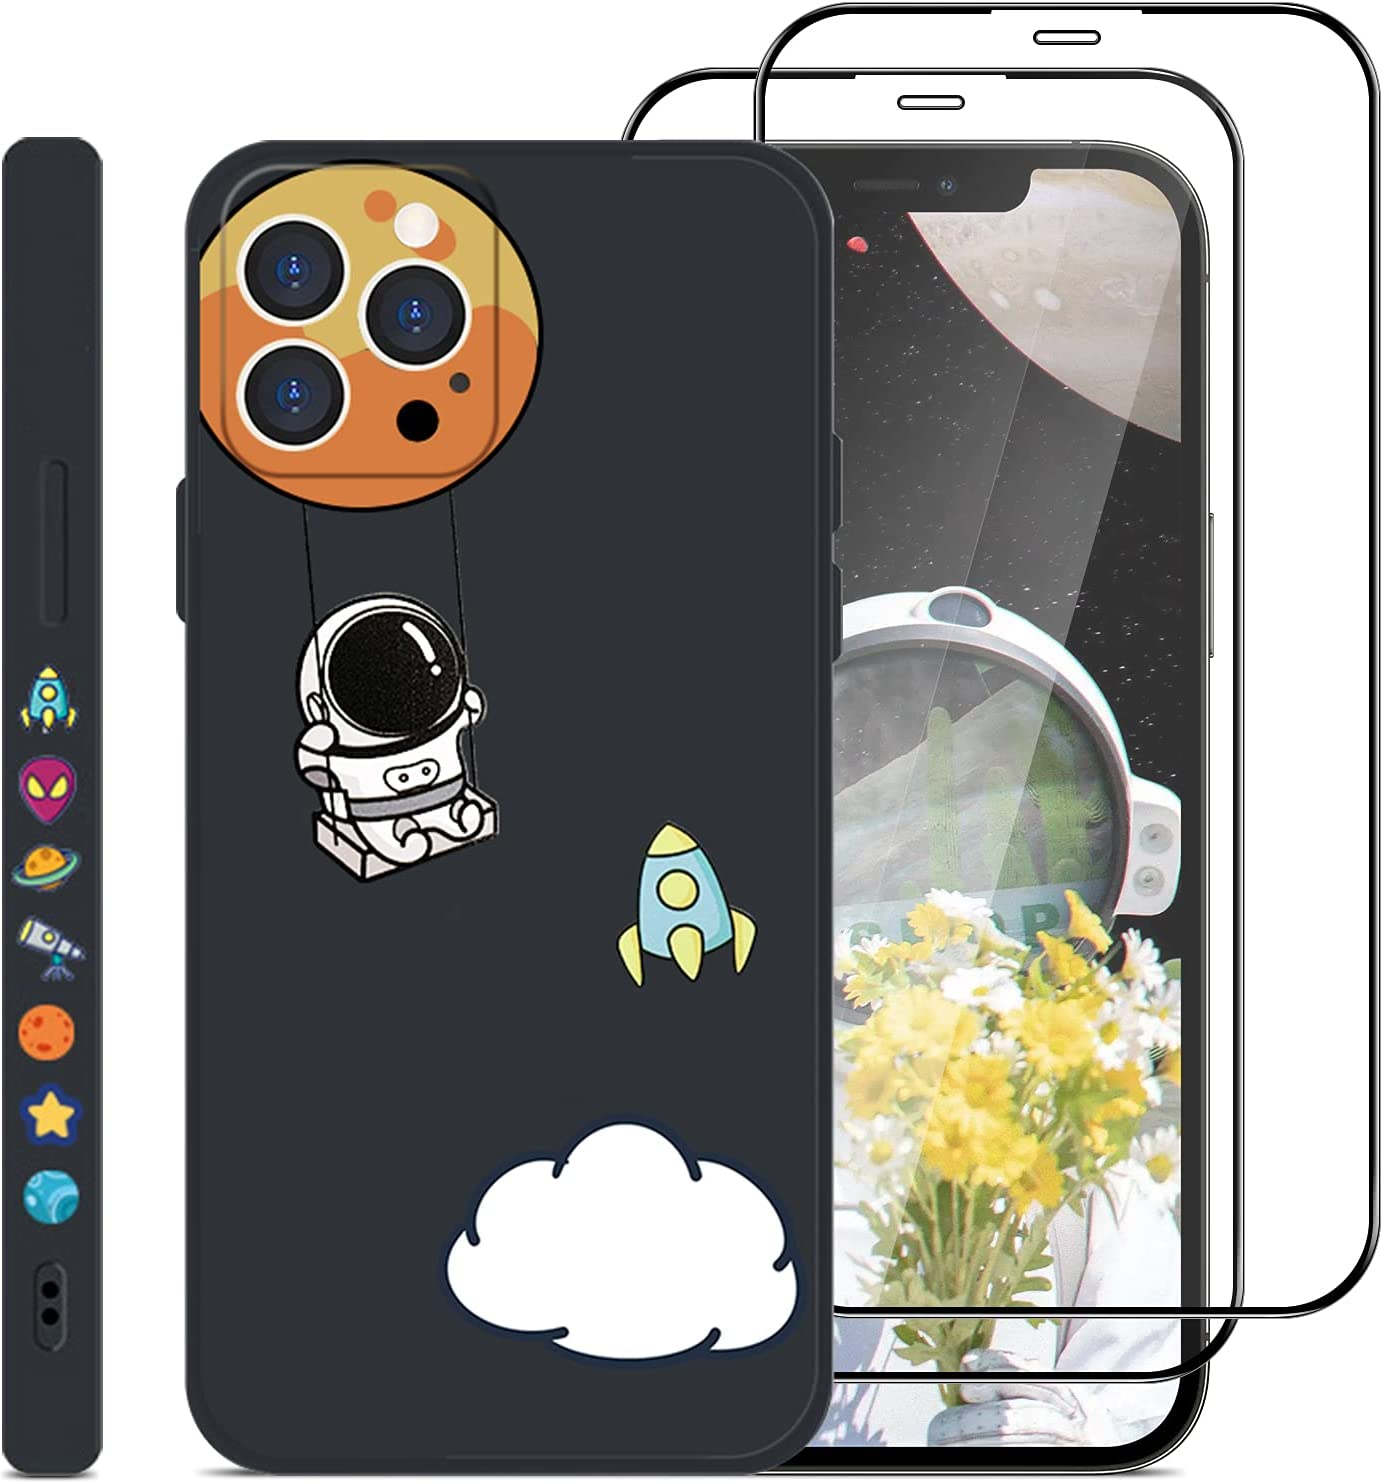 [3p] Jusy Little Astronaut Compatible with iPhone 12 Pro max Case & 2 Tempered Glass Screen Protectors for iPhone 12 promax, Outer Space Universe Cute Cartoon Pattern, Wireless Charging (Black Swing)